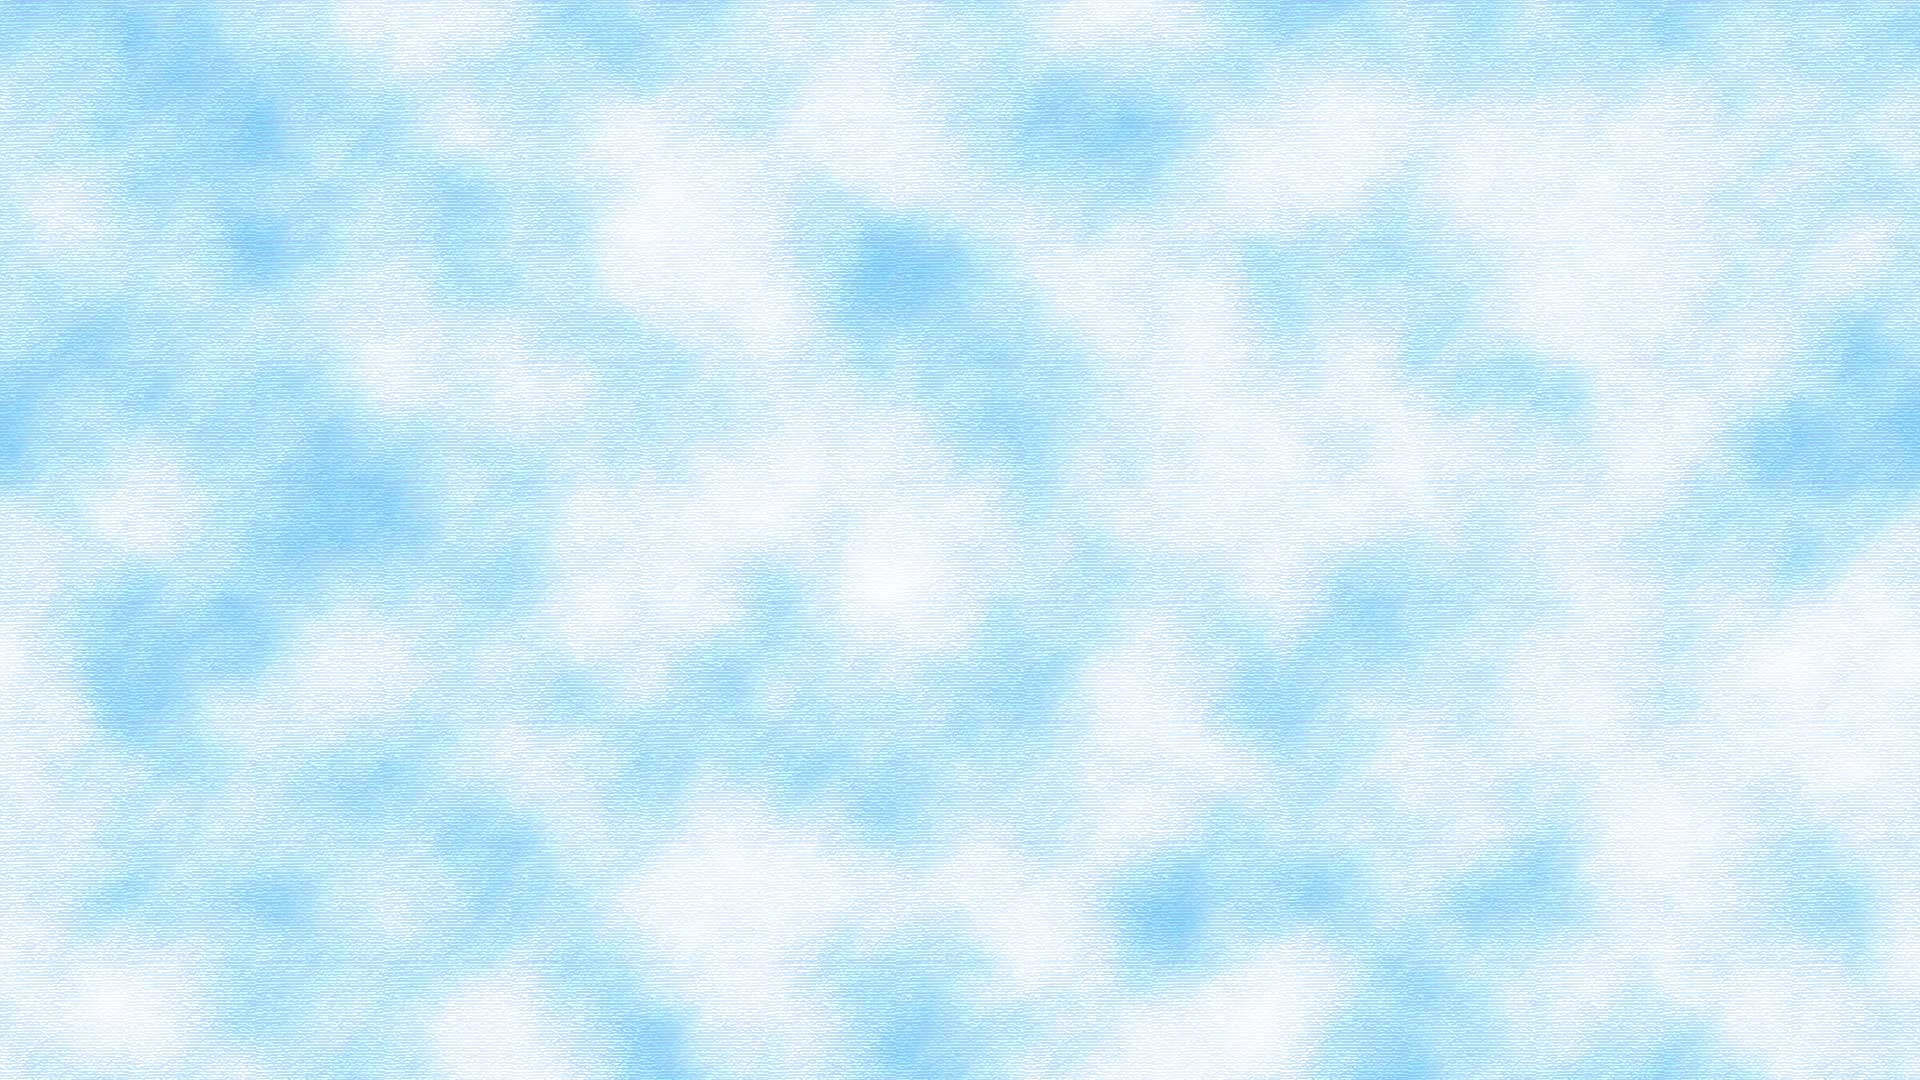 background-pattern-clouds-Lastest-Free-Download-Clouds-Blue-Pattern-Background-Tumblr-throughout-wallpaper-wp3802755